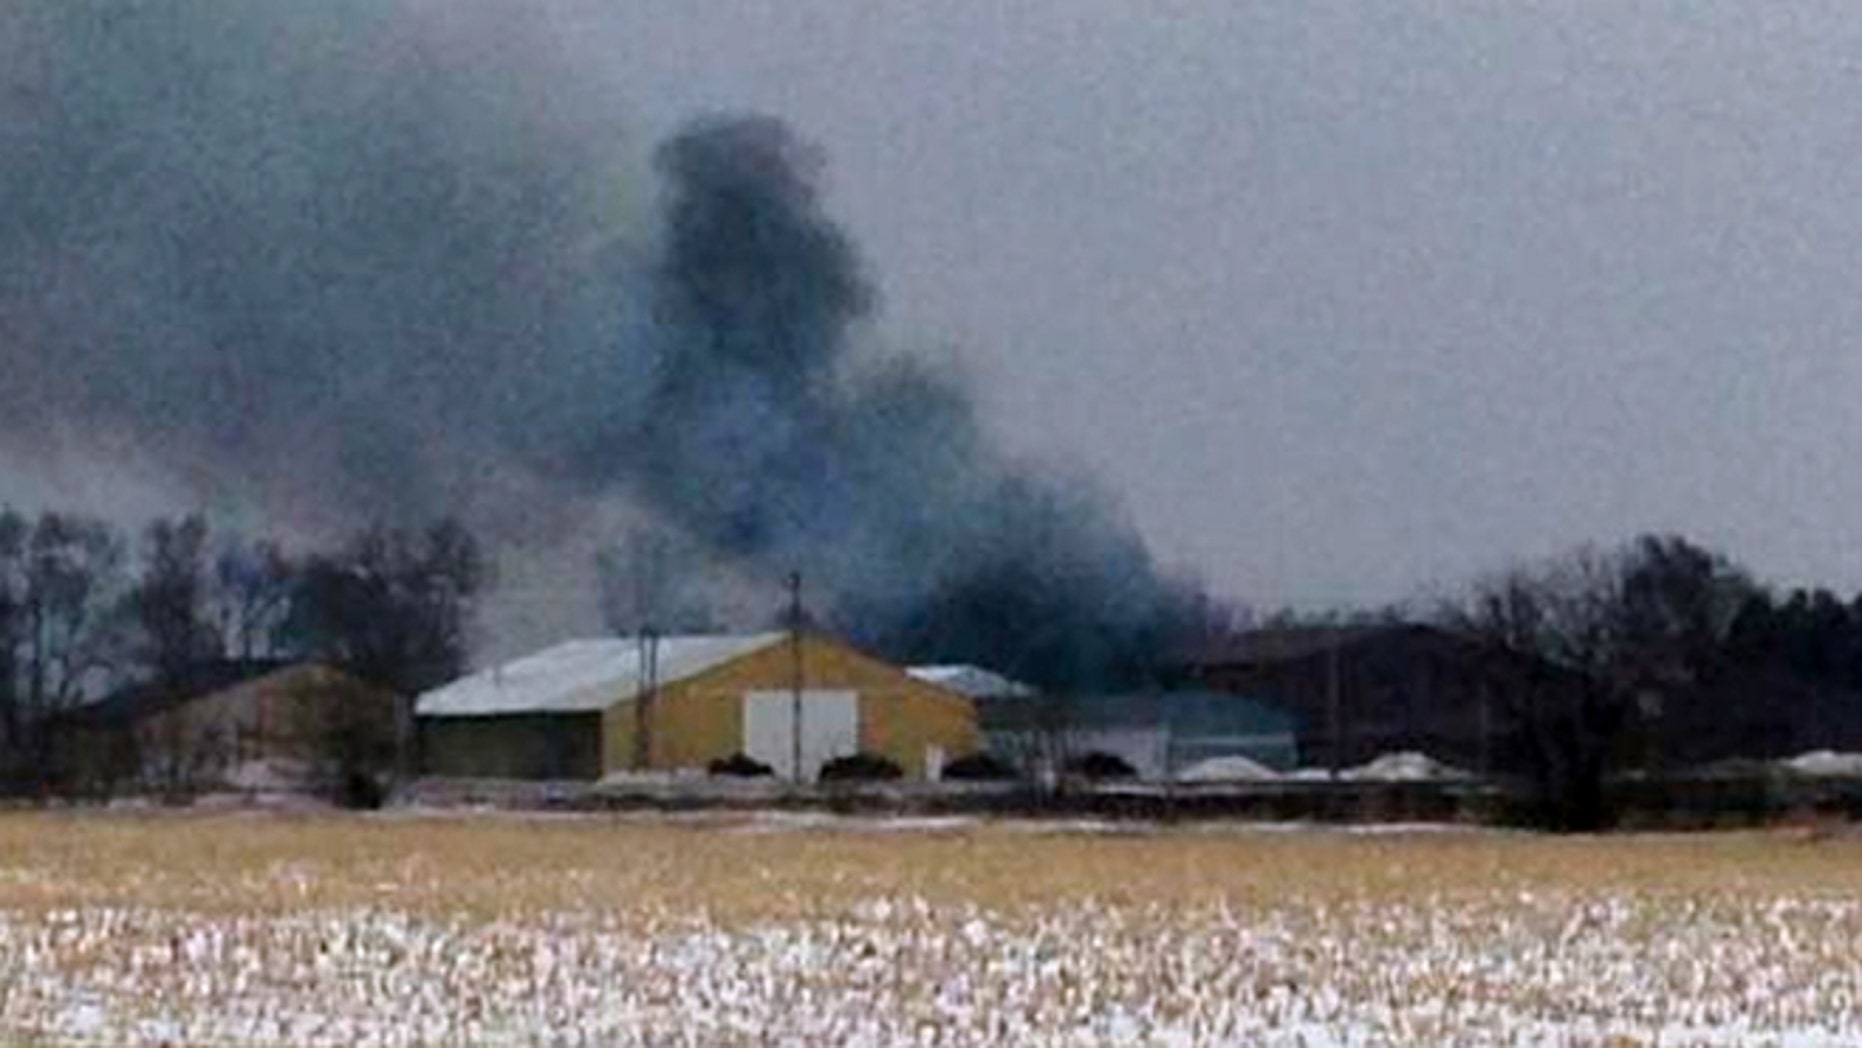 Feb. 20: Smoke rises from a fire in Northwood, Iowa as an evacuation order is in place for Northwood due to a fire at a fertilizer plant at Northwood Municipal Airport.